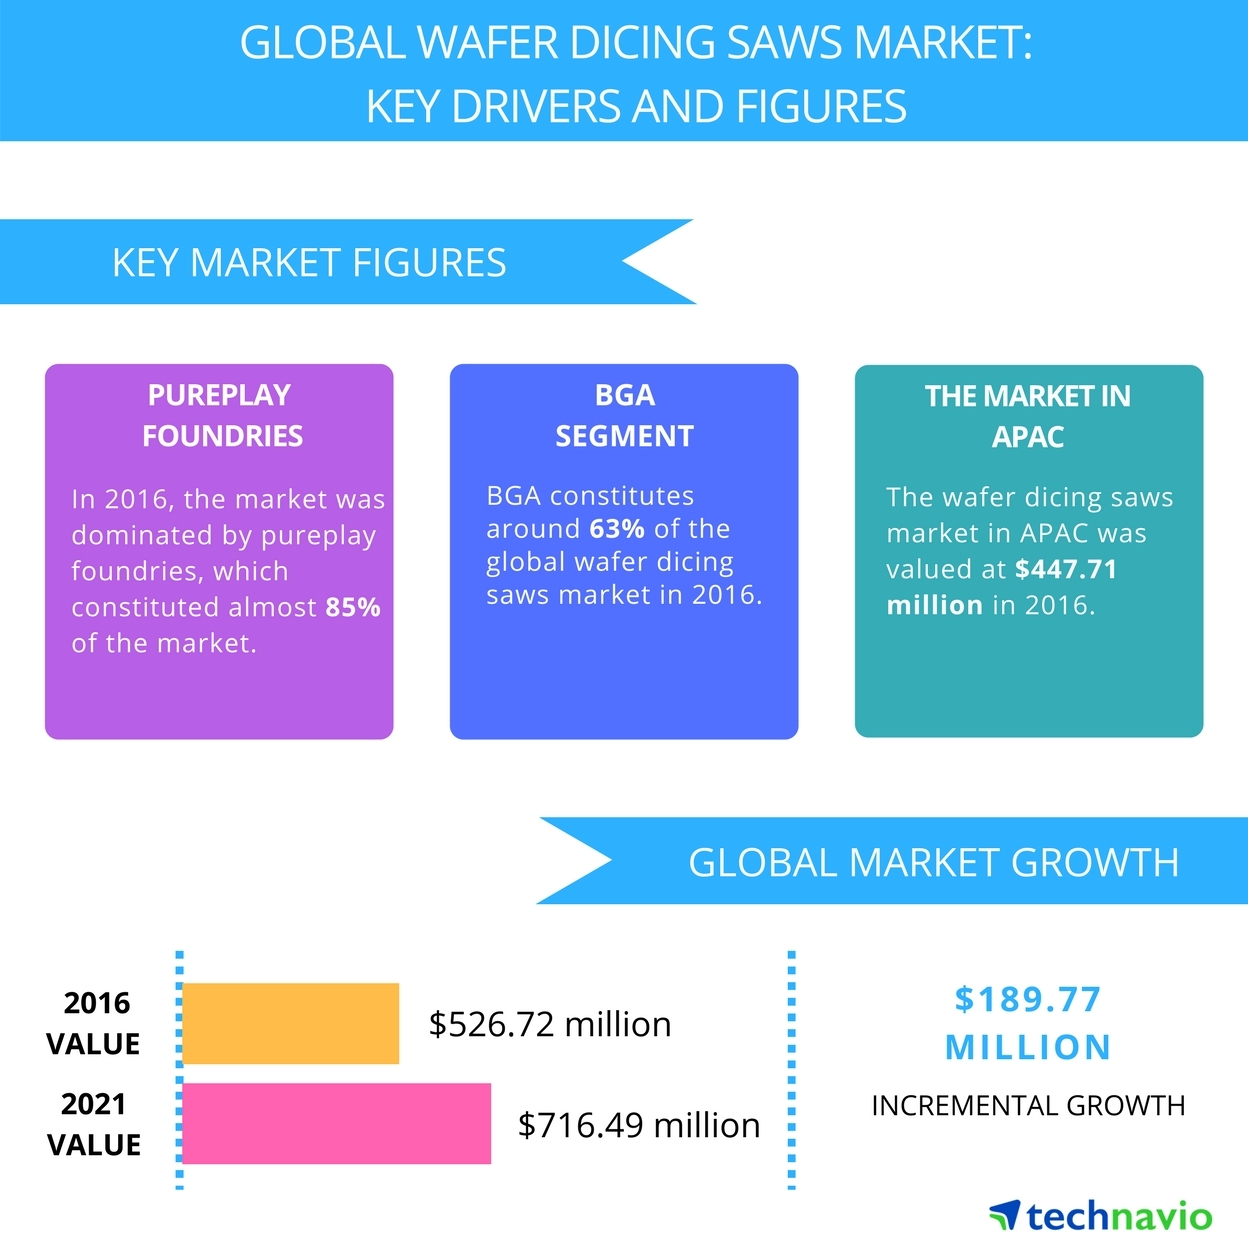 Top 3 Trends Impacting the Global Wafer Dicing Saws Market